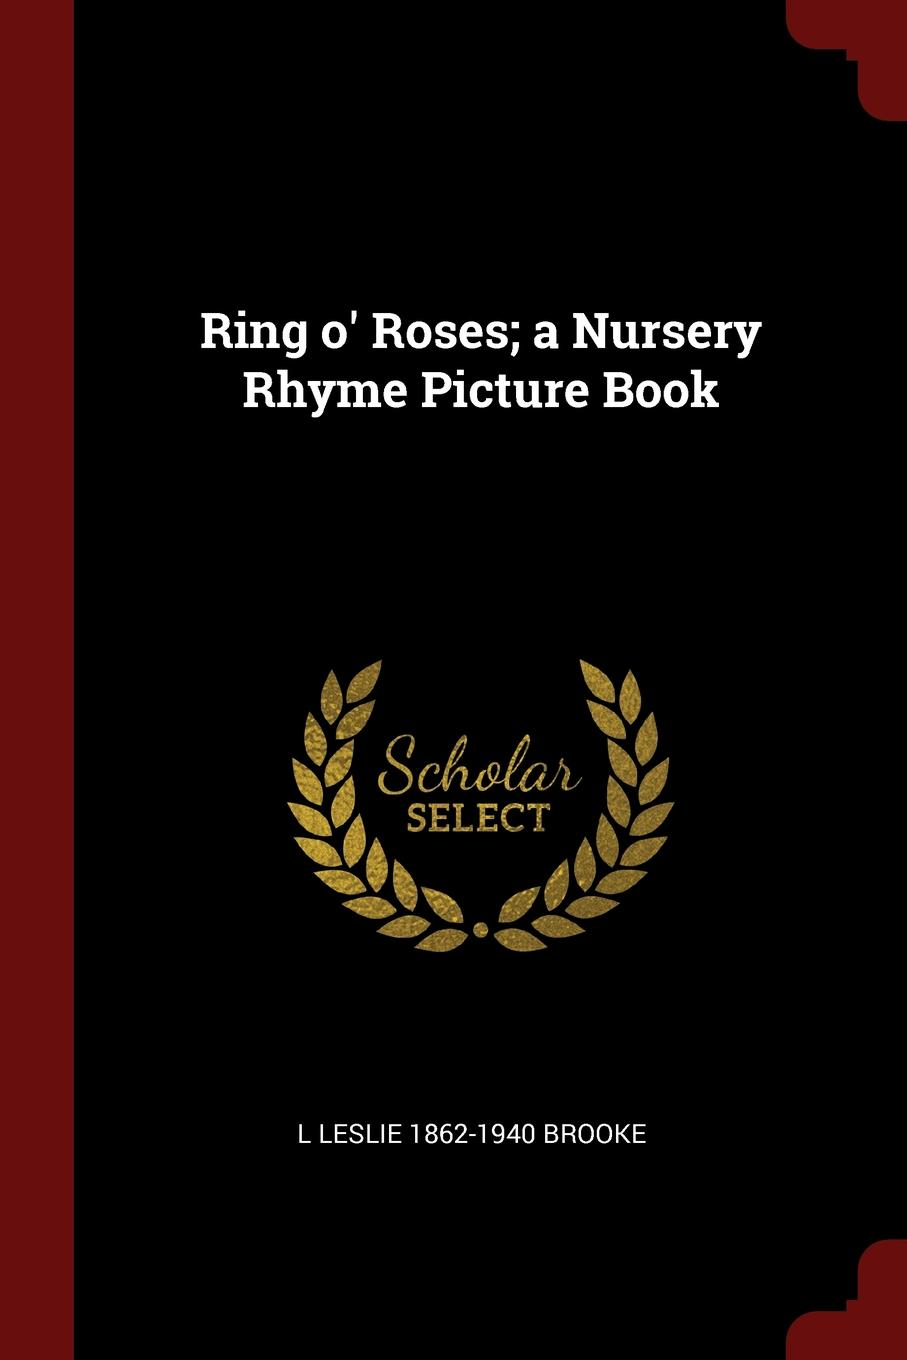 Ring o. Roses; a Nursery Rhyme Picture Book. L Leslie 1862-1940 Brooke